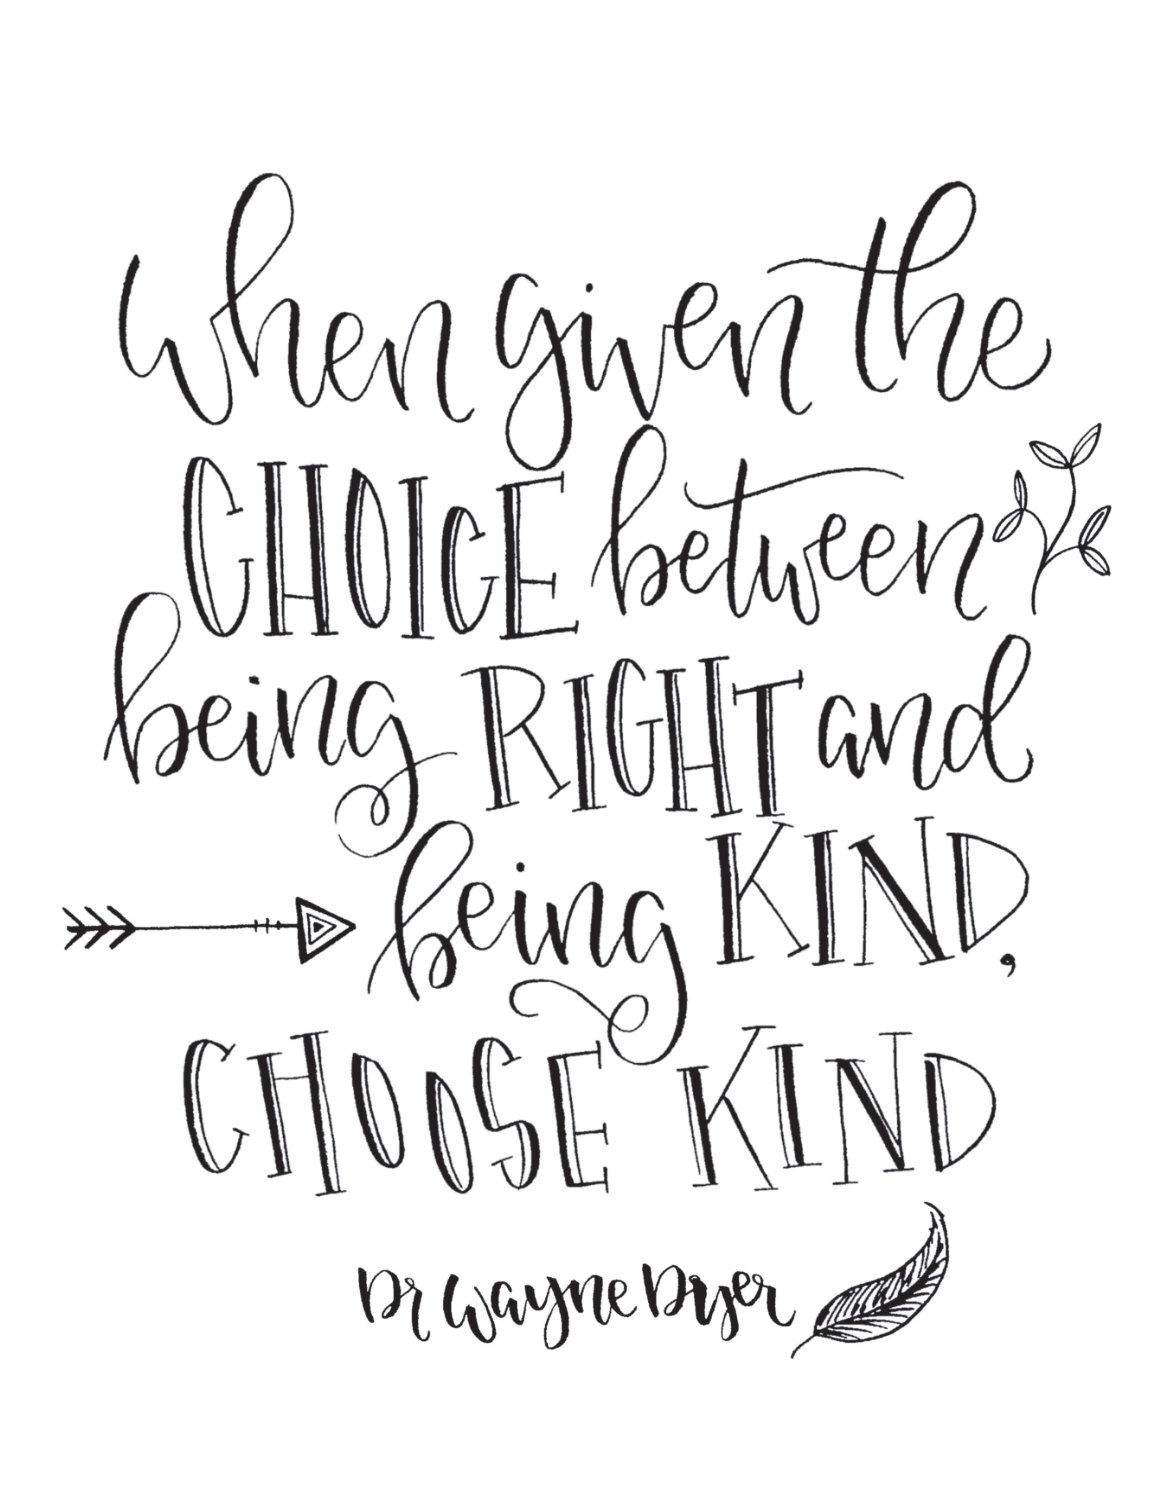 Choose Kind Hand Lettered Quote Wall Art Print 8x10 Or 5x7 By